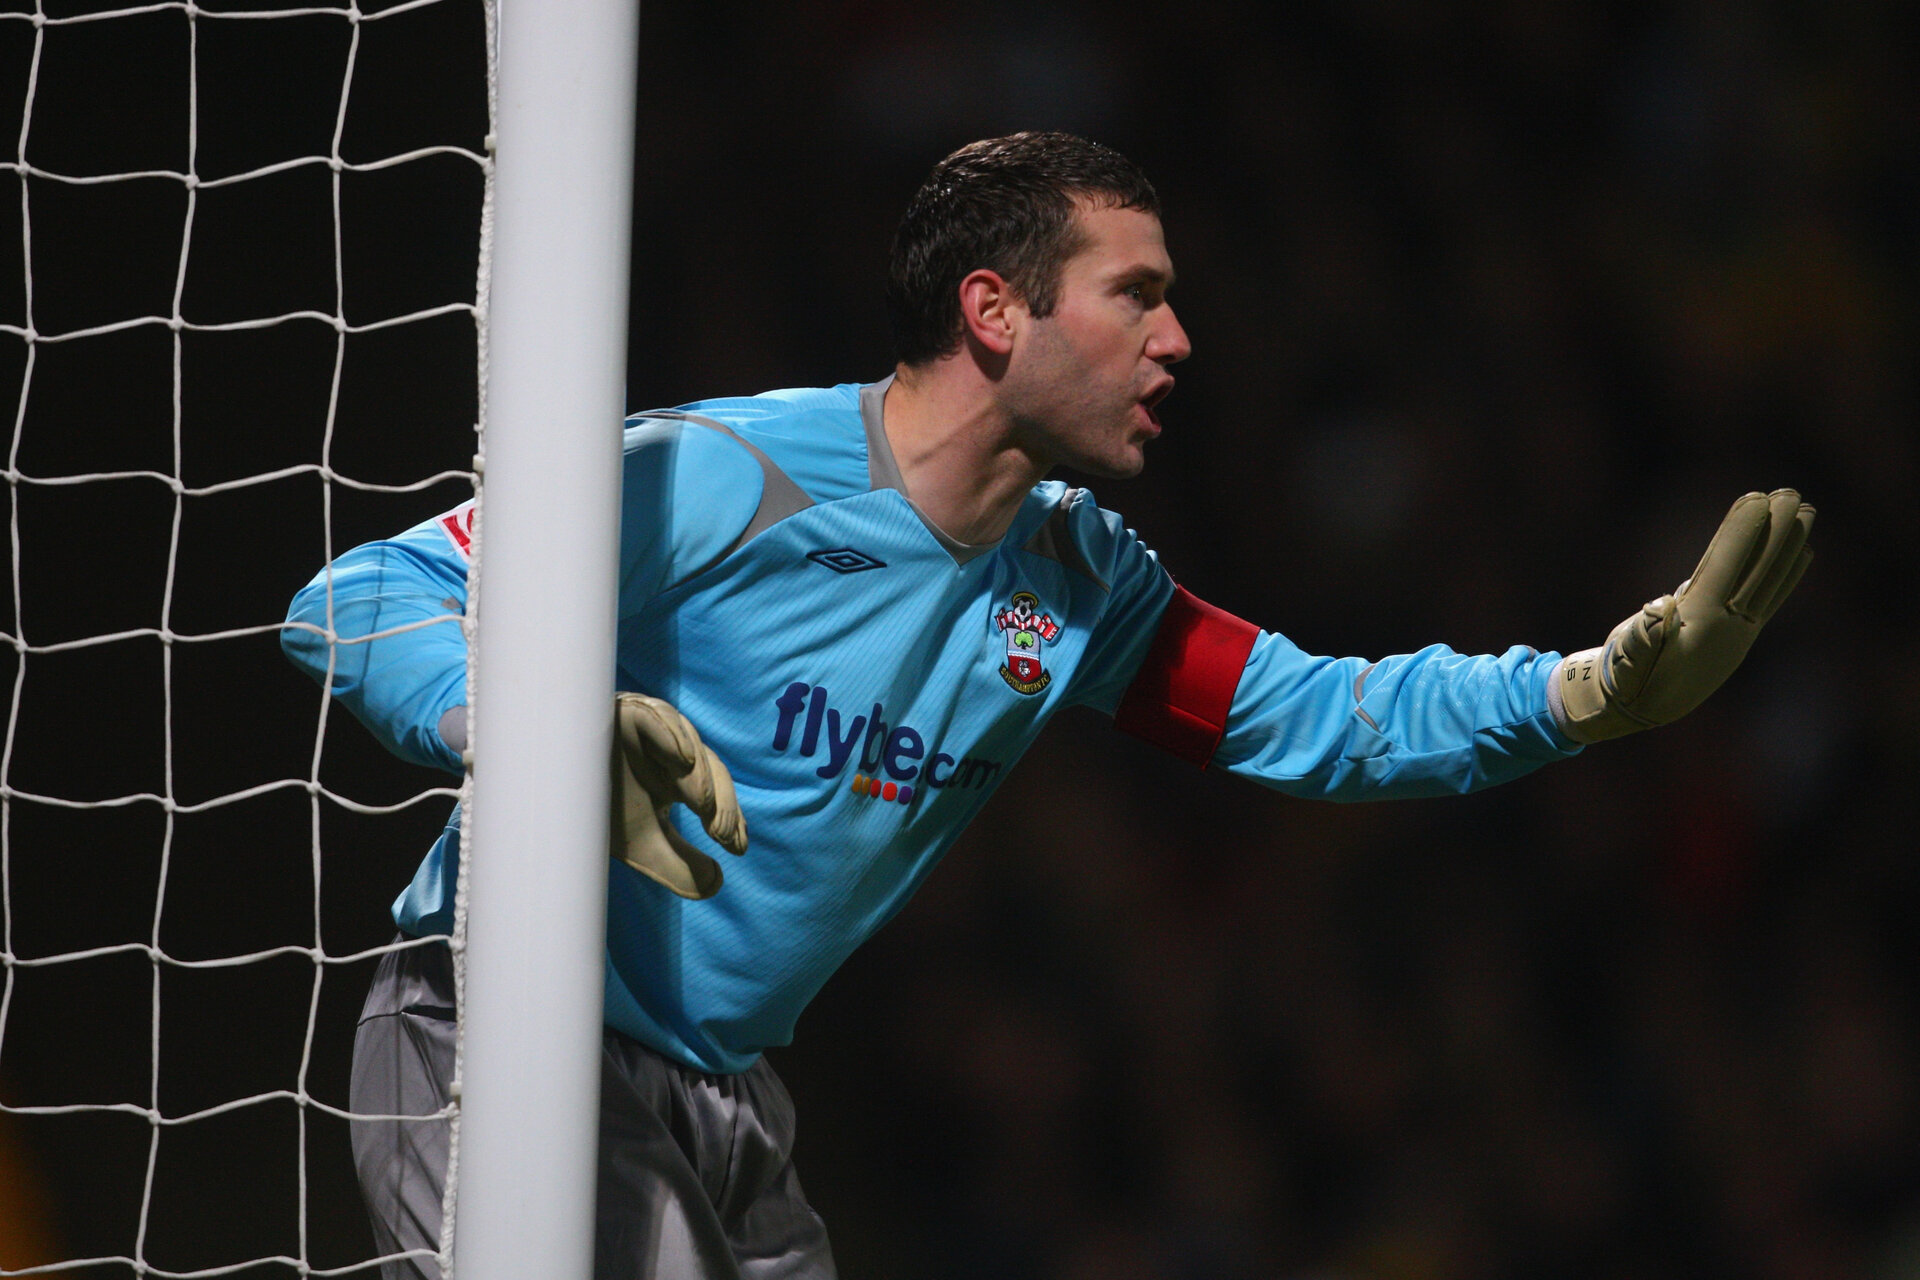 NORWICH, UNITED KINGDOM - JANUARY 27:  Kelvin Davis of Southampton gives instructions during the Coca-Cola Championship match between Norwich City and Watford at Carrow Road on January 27, 2009 in Norwich, England.  (Photo by Jamie McDonald/Getty Images)